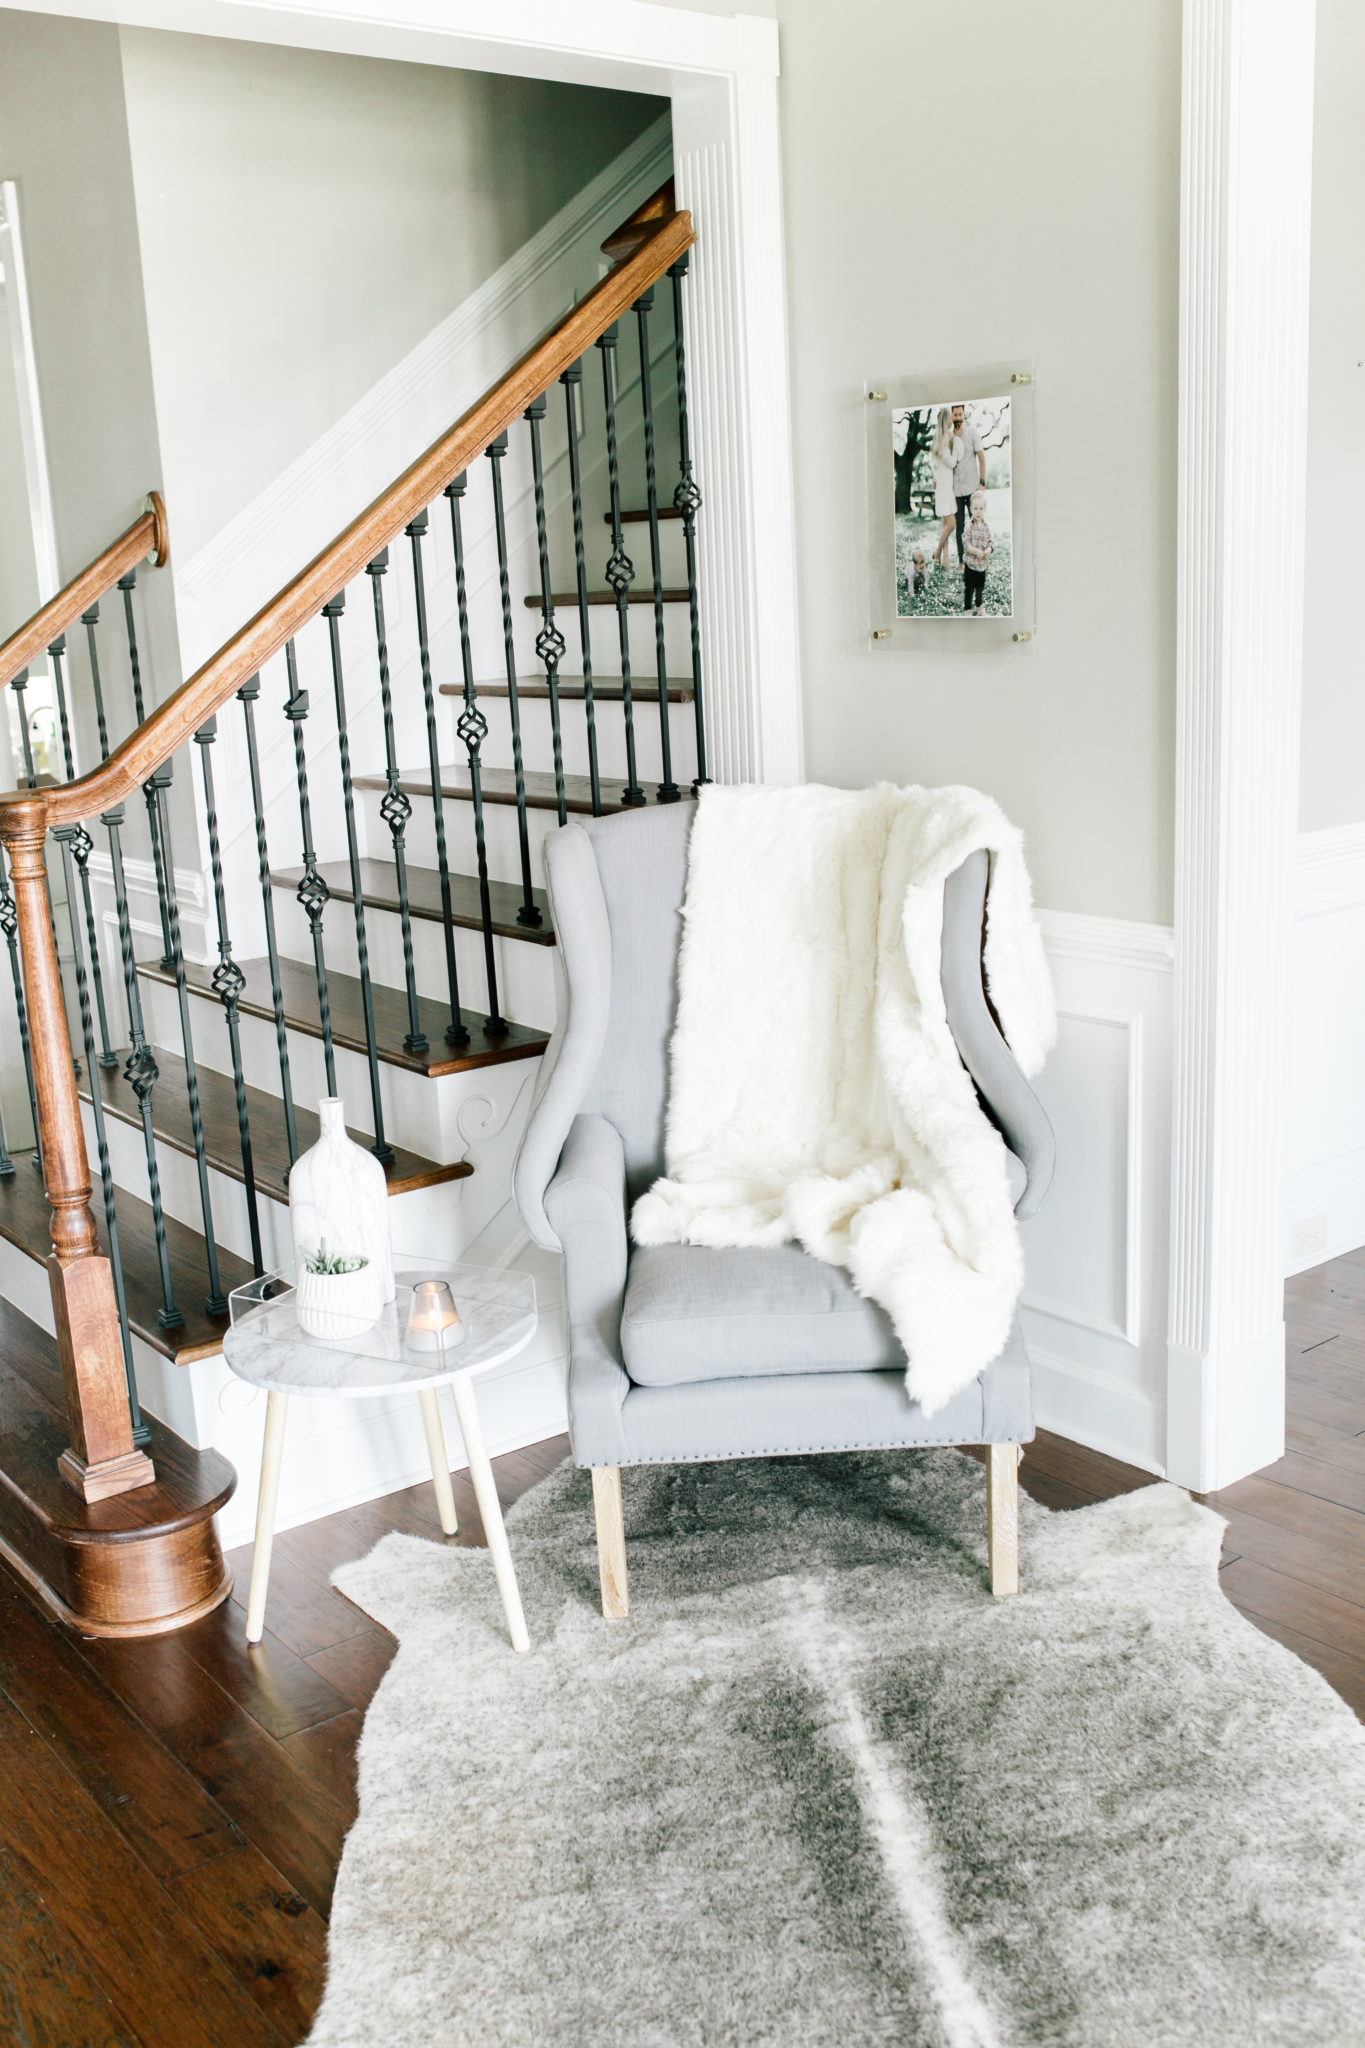 Home Decor - Entryway with Hudson Valley Lighting - Beaus ...